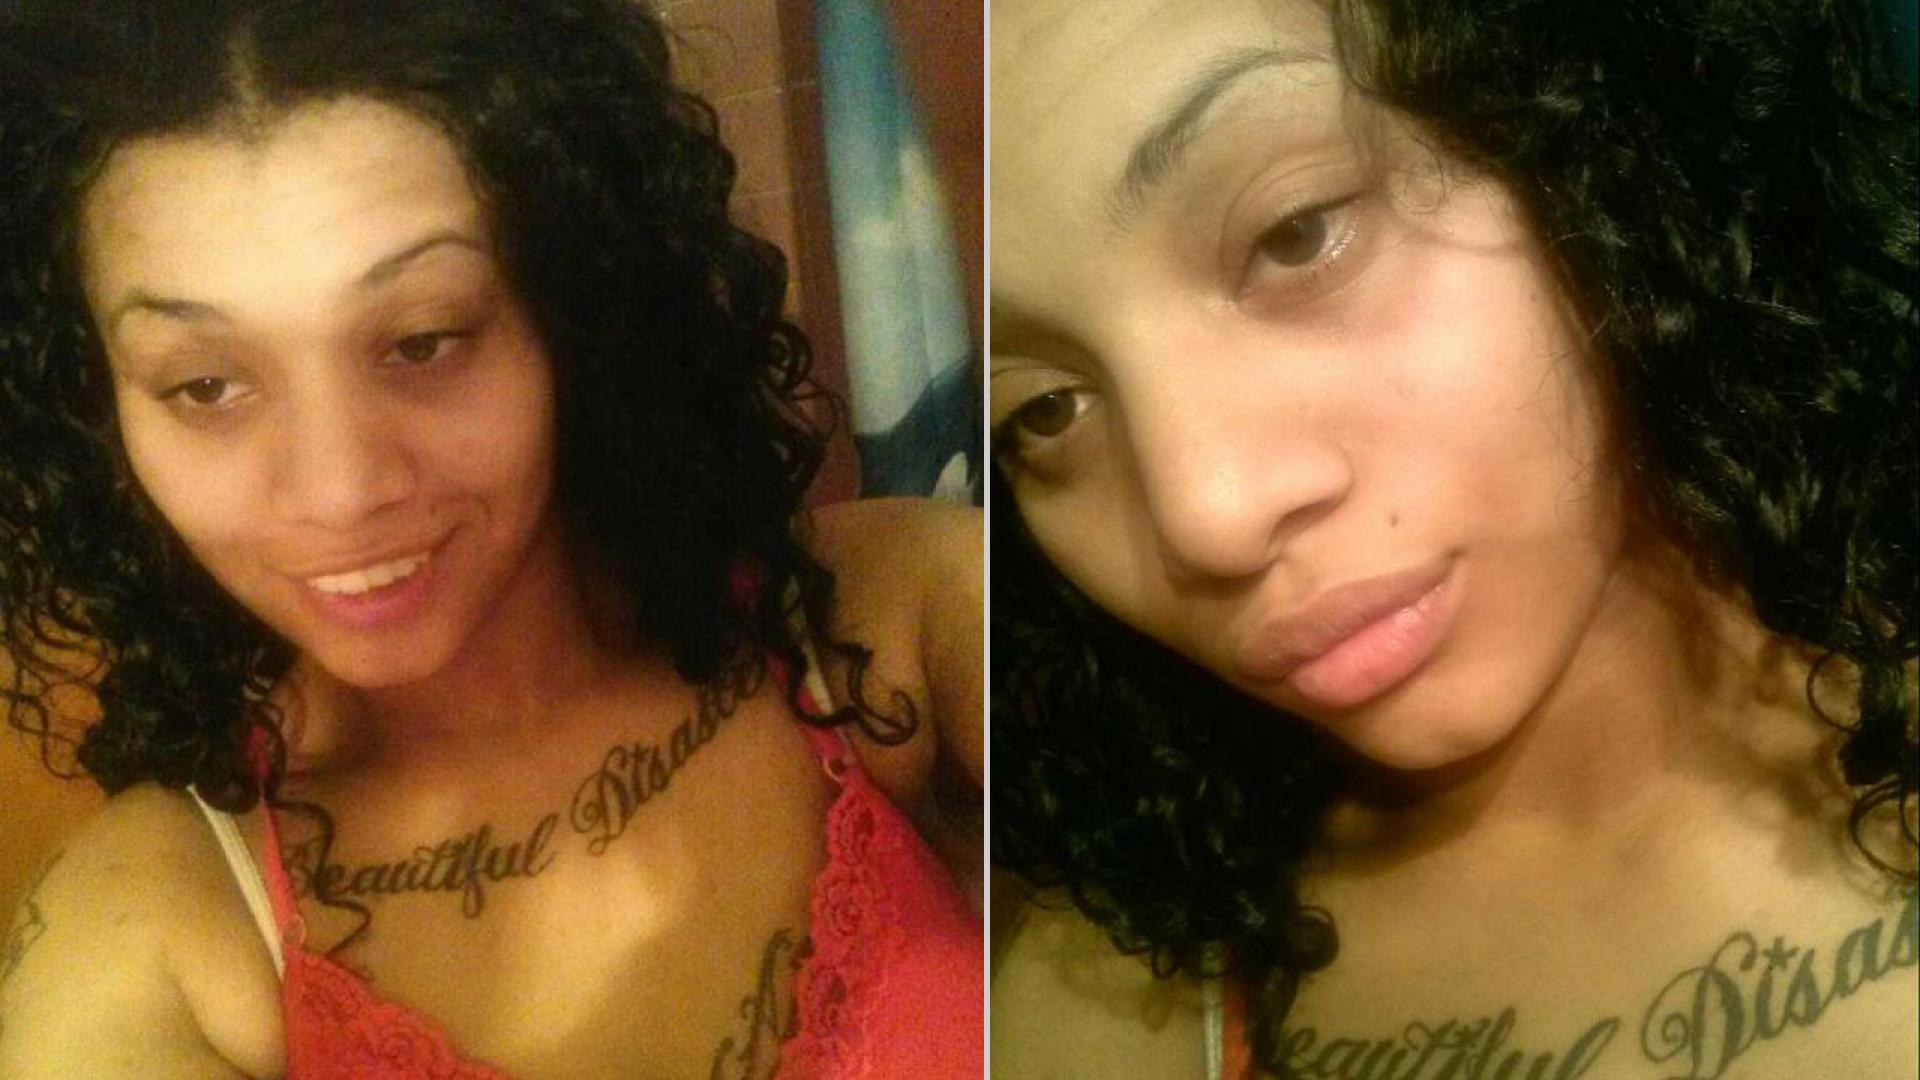 Janika Edmond killed herself inside the Women's Huron Valley Correctional Facility.